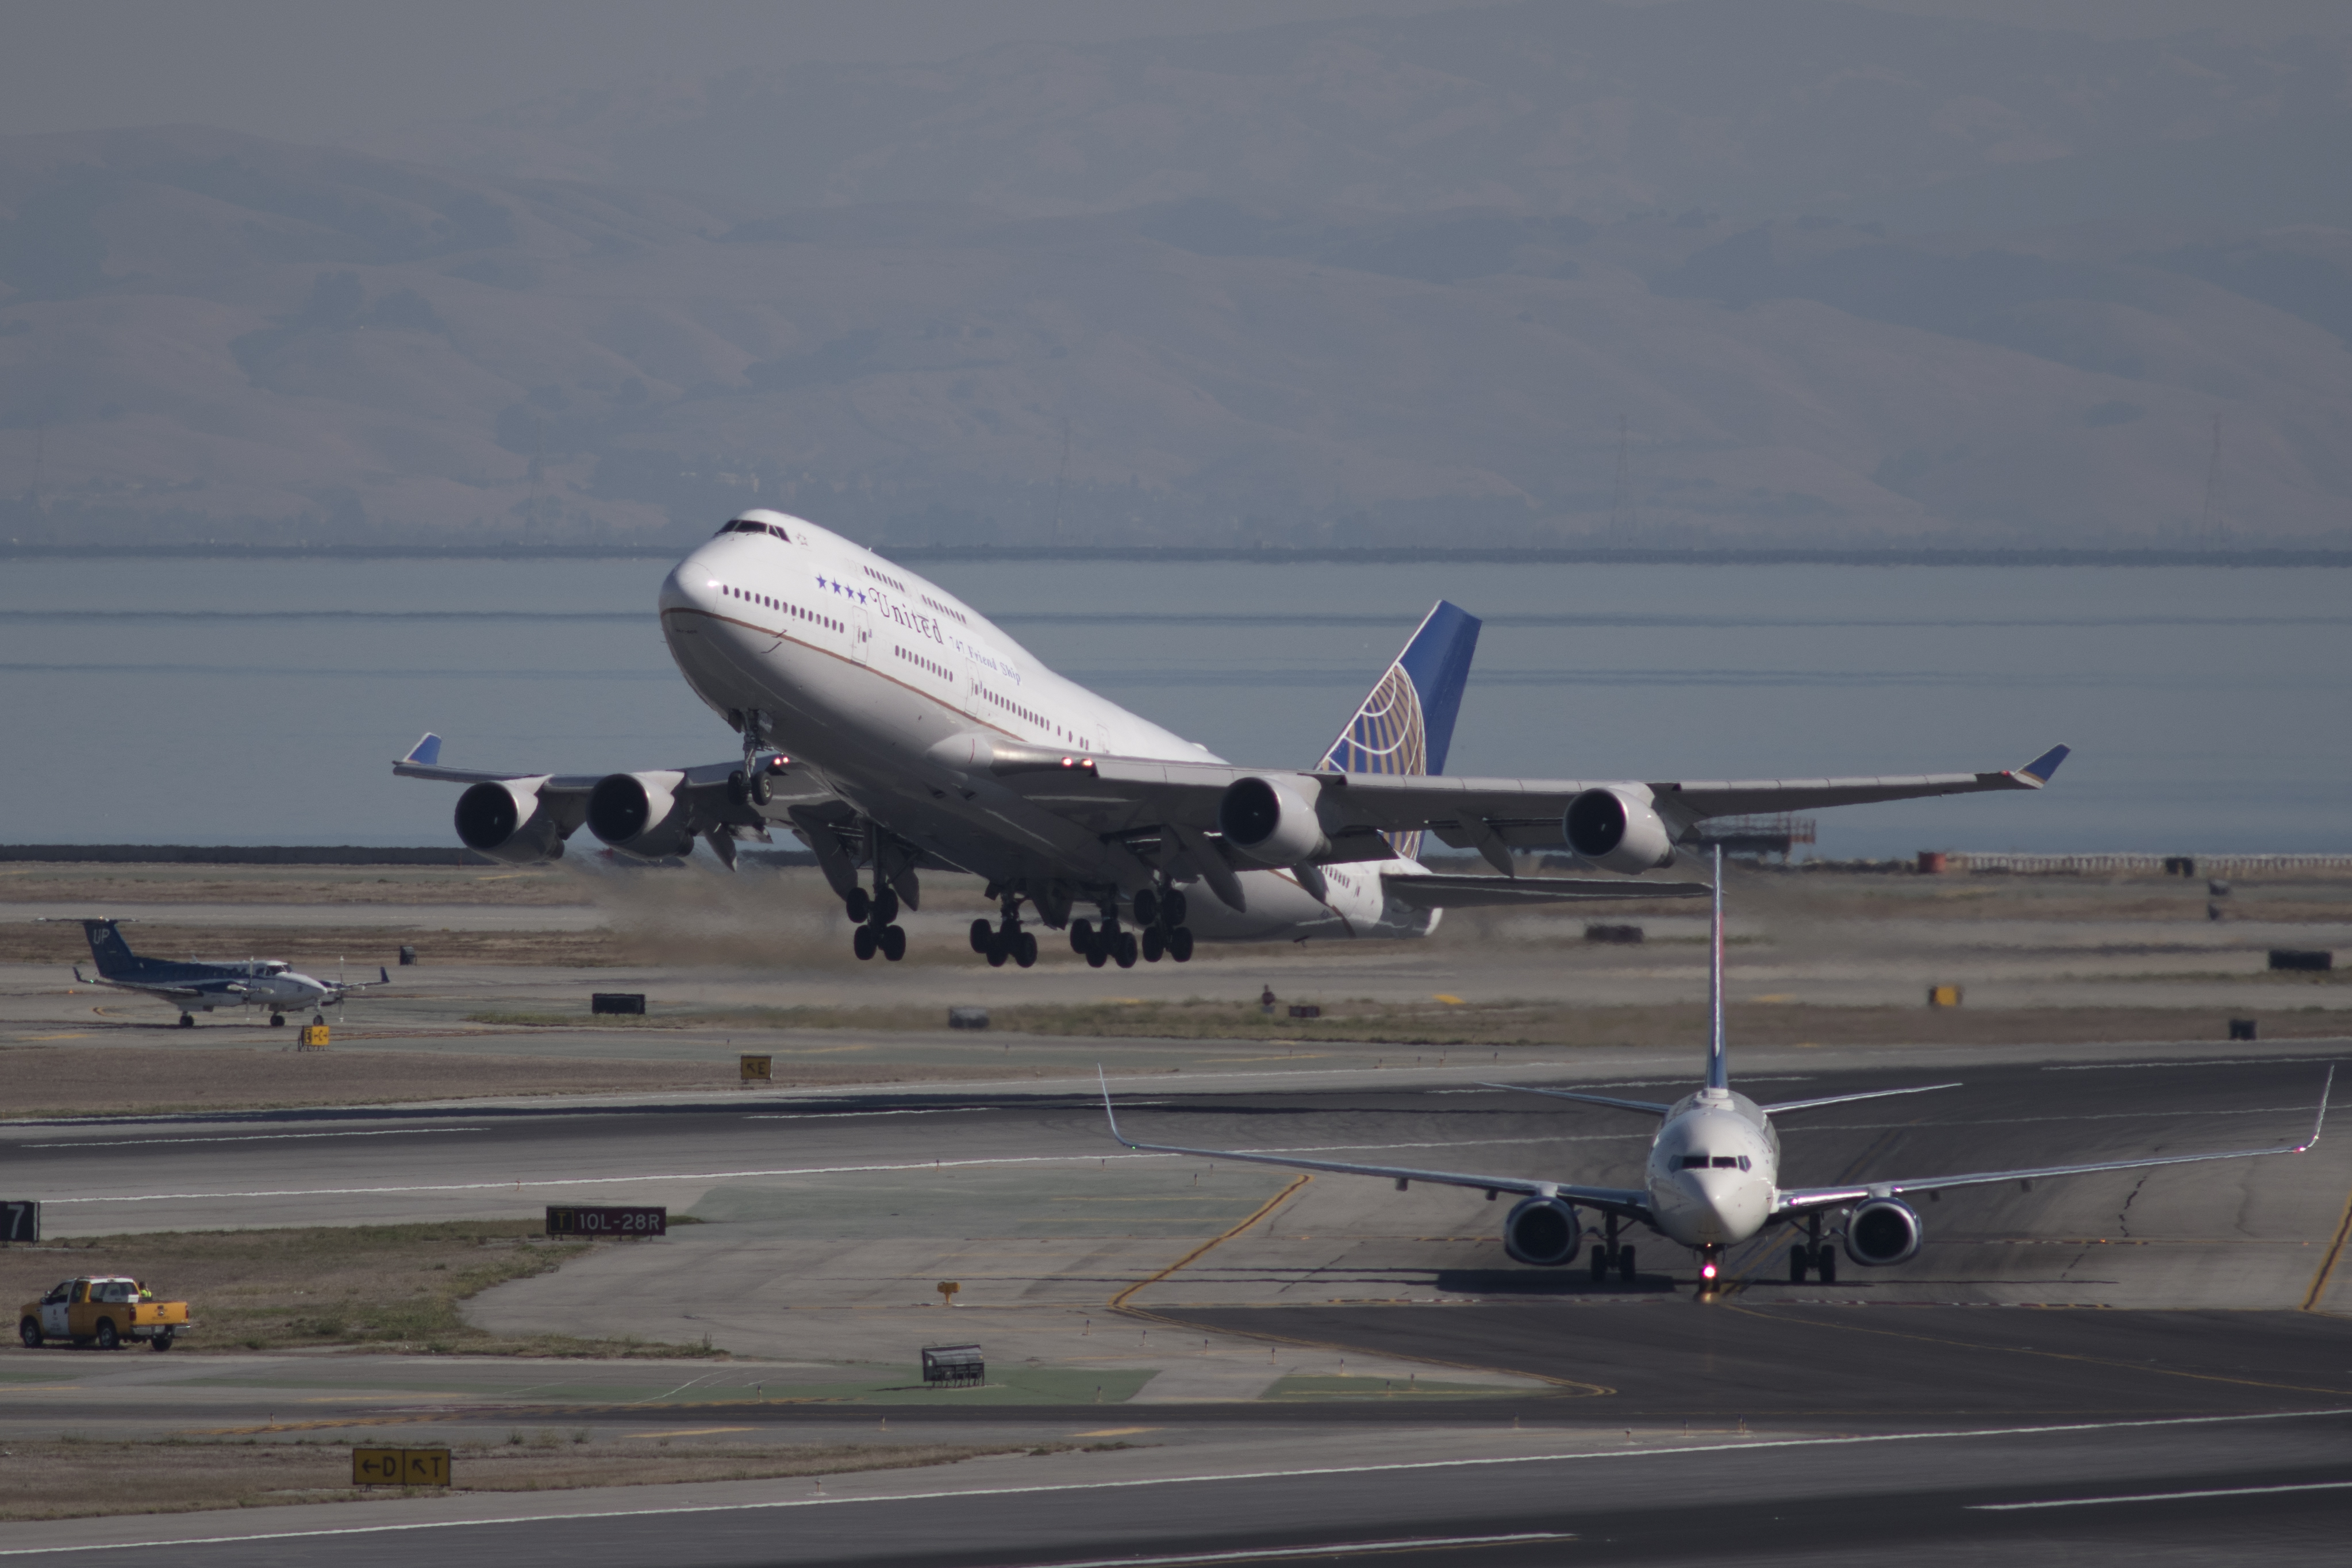 United Airlines' Boeing 747-400 aircraft performed its last passenger flight on November 7, 2017, from San Francisco to Hawaii.